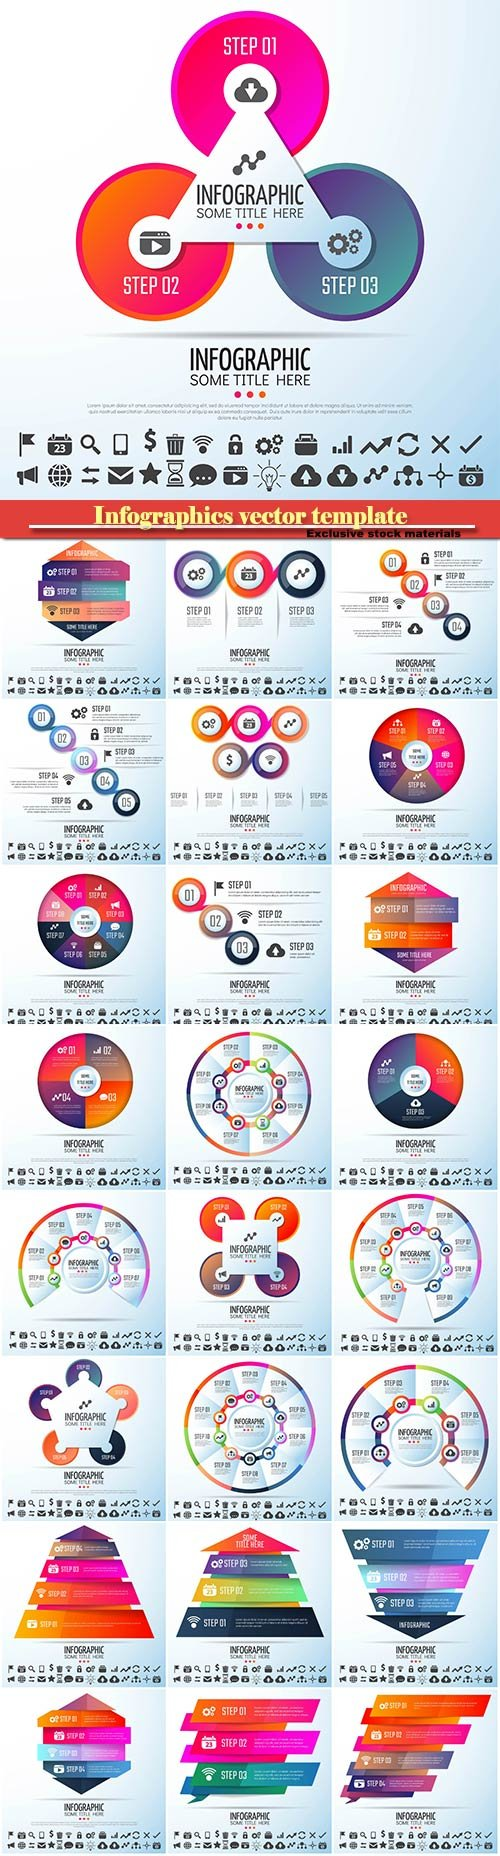 Infographics vector template for business presentations or information banner # 5